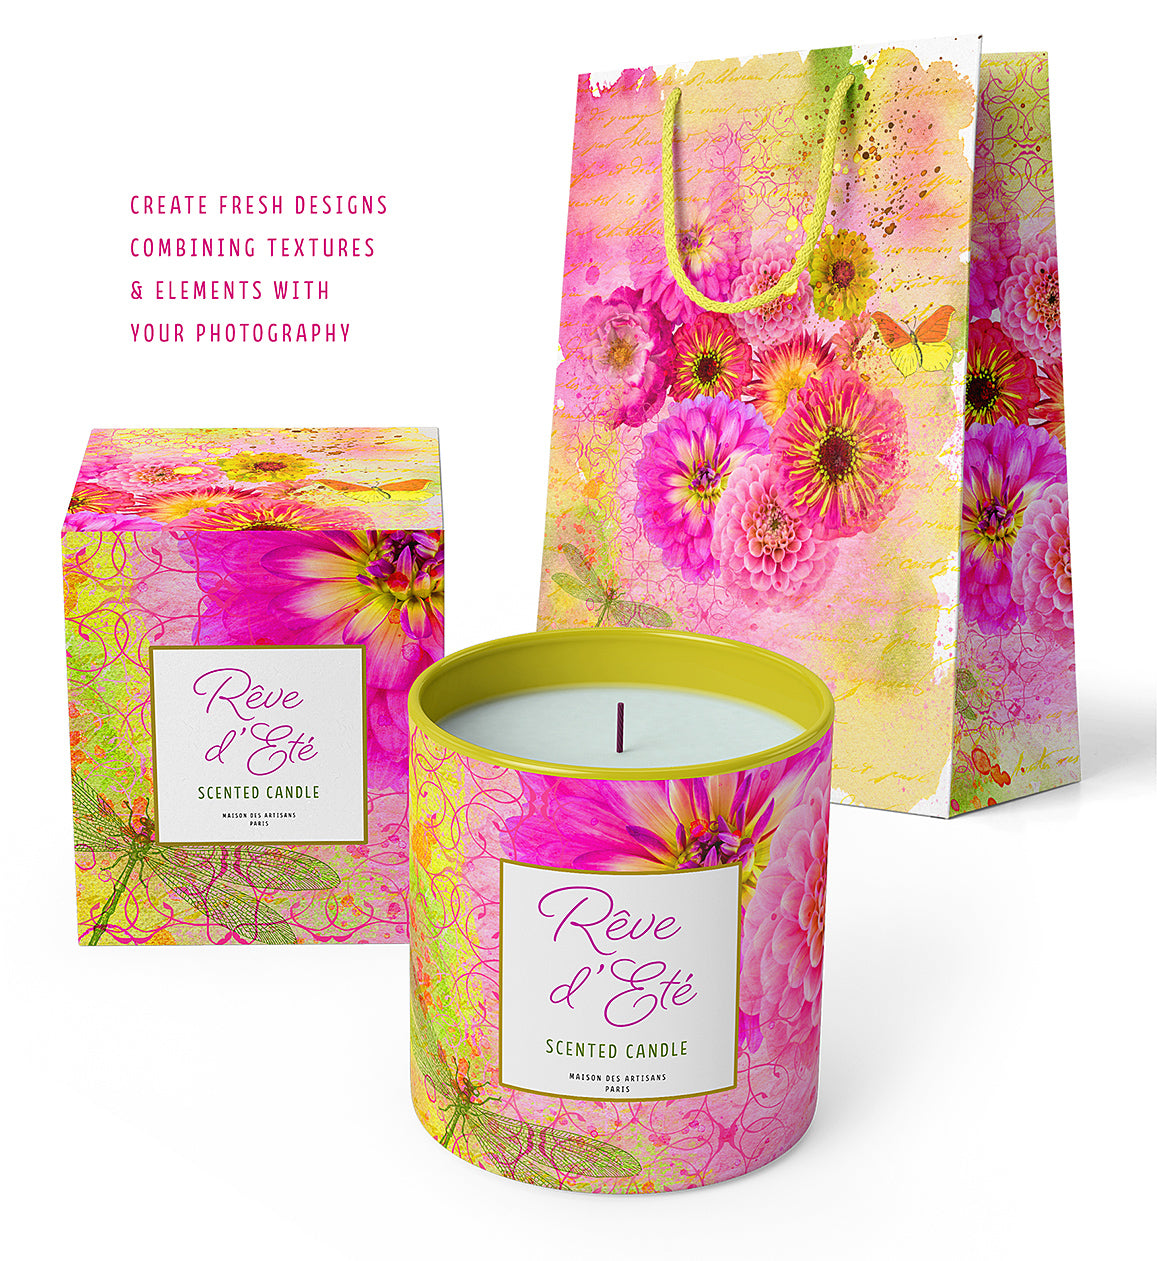 Candle and shopping bag packaging design mockups using the Complete Inspirational Textures and Elements Collection.